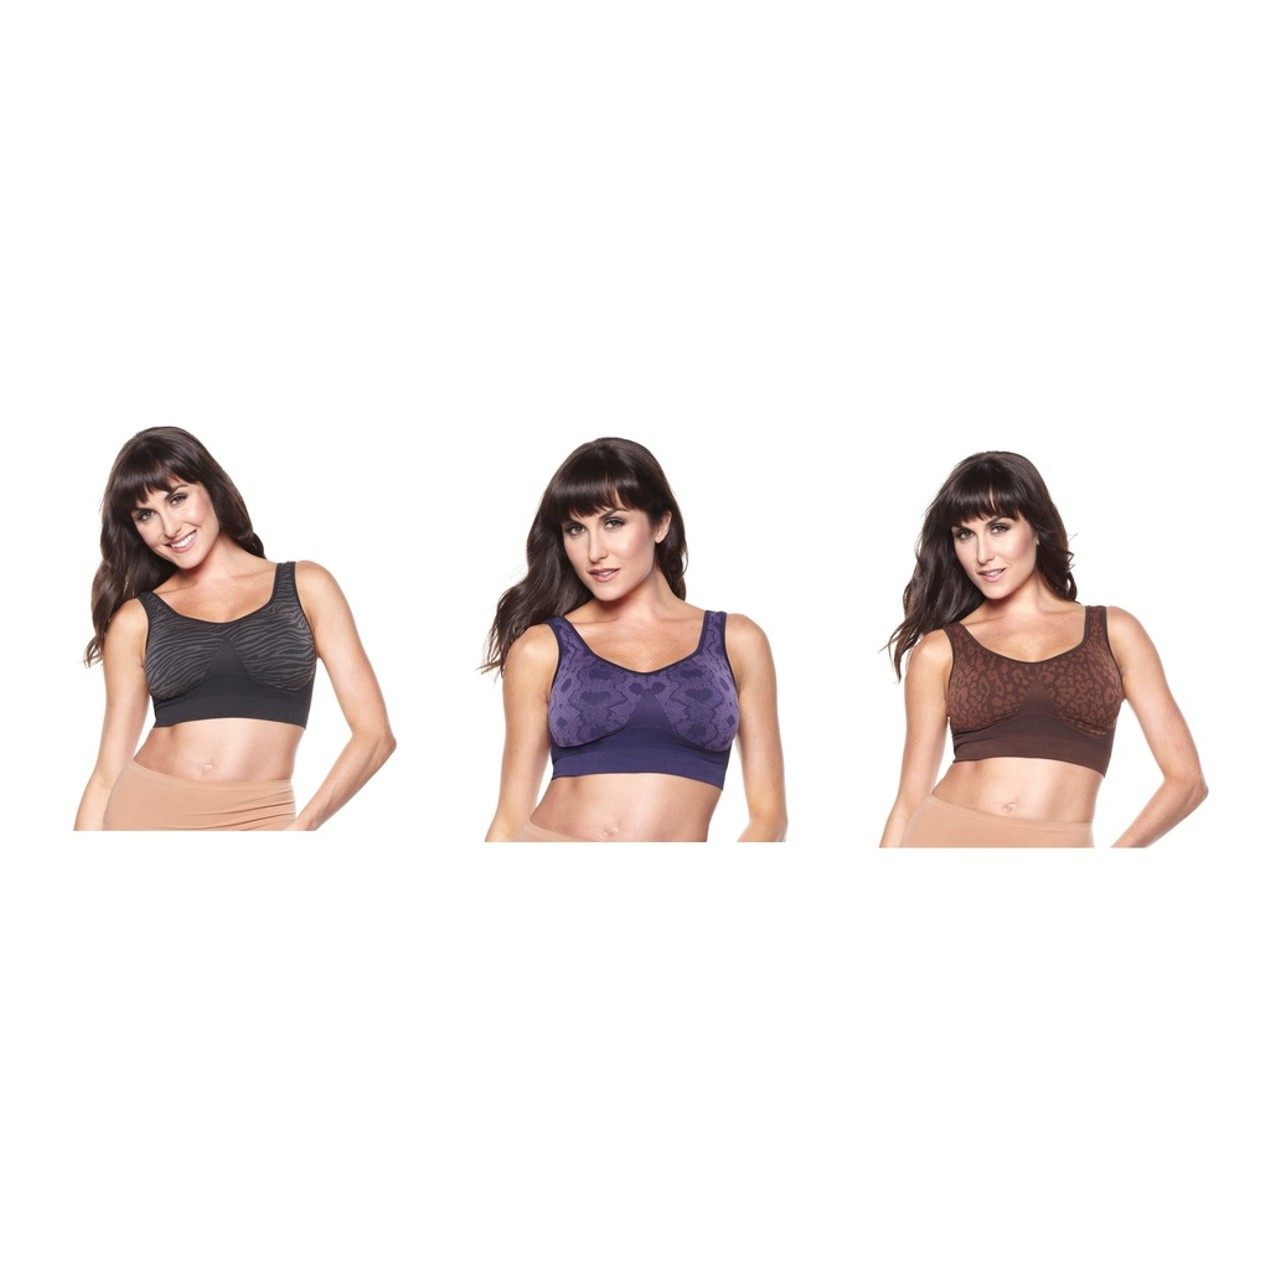 c15f86ce16d6b Rhonda Shear 3-Pack  Ahh Bras with 1 Pair of Removable Pads - Tanga